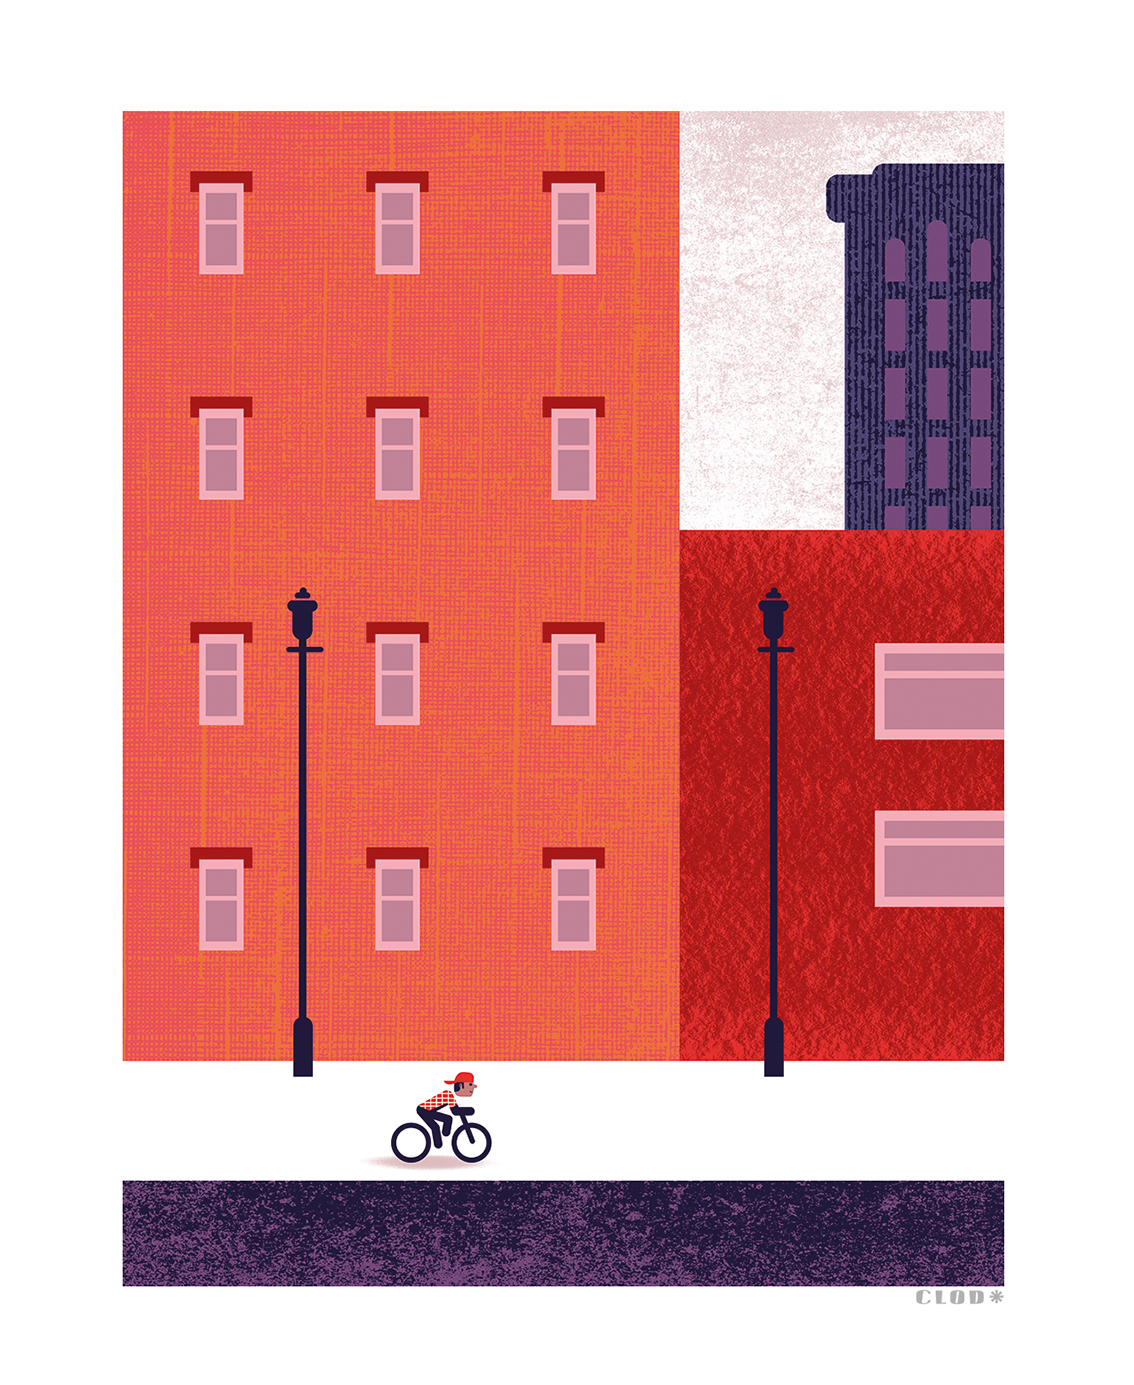 Clod illustration tirage d'art PapaPaper vélo à Brooklyn à New York